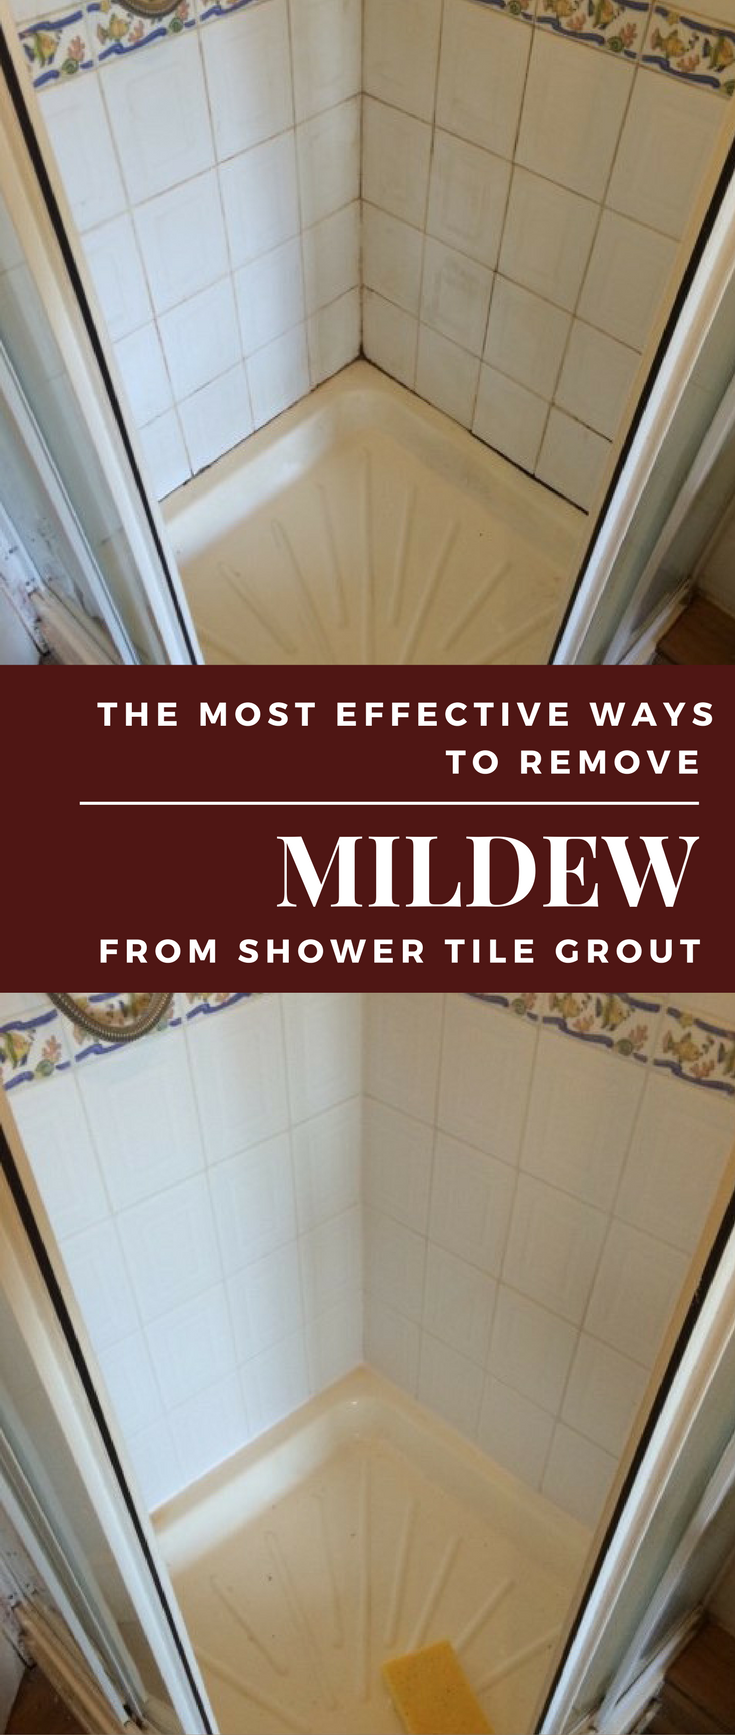 The Most Effective Ways To Remove Mildew From Shower Tile Grout Ncleaningtips Com Cleaning Shower Tiles Shower Grout Shower Mold